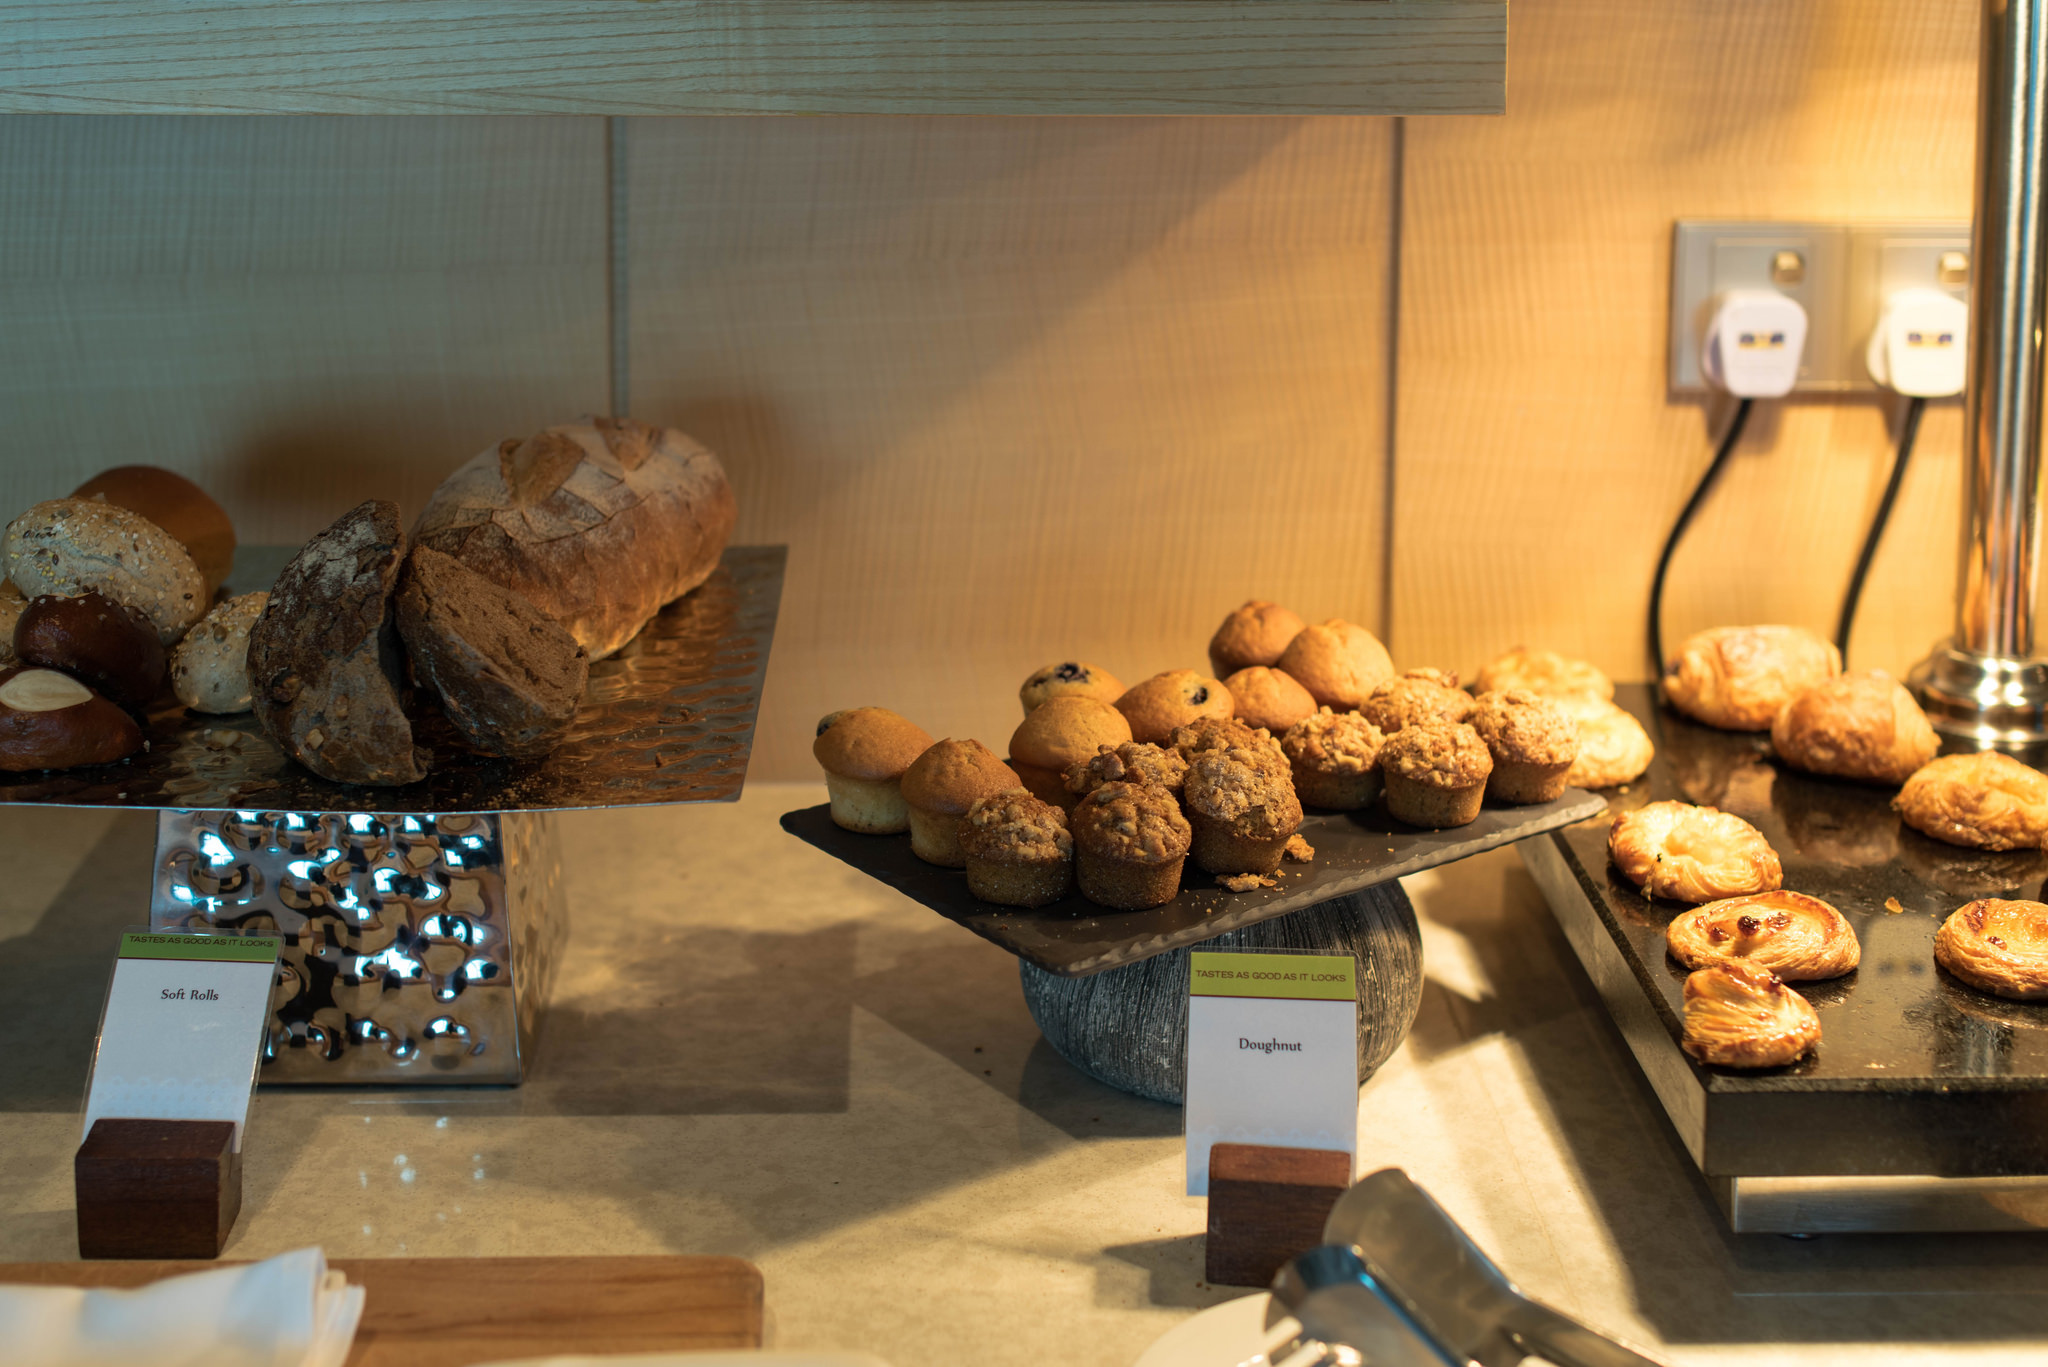 Breakfast is served at the Executive Lounge of the Doubletree By Hilton Hotel Johor Bahru